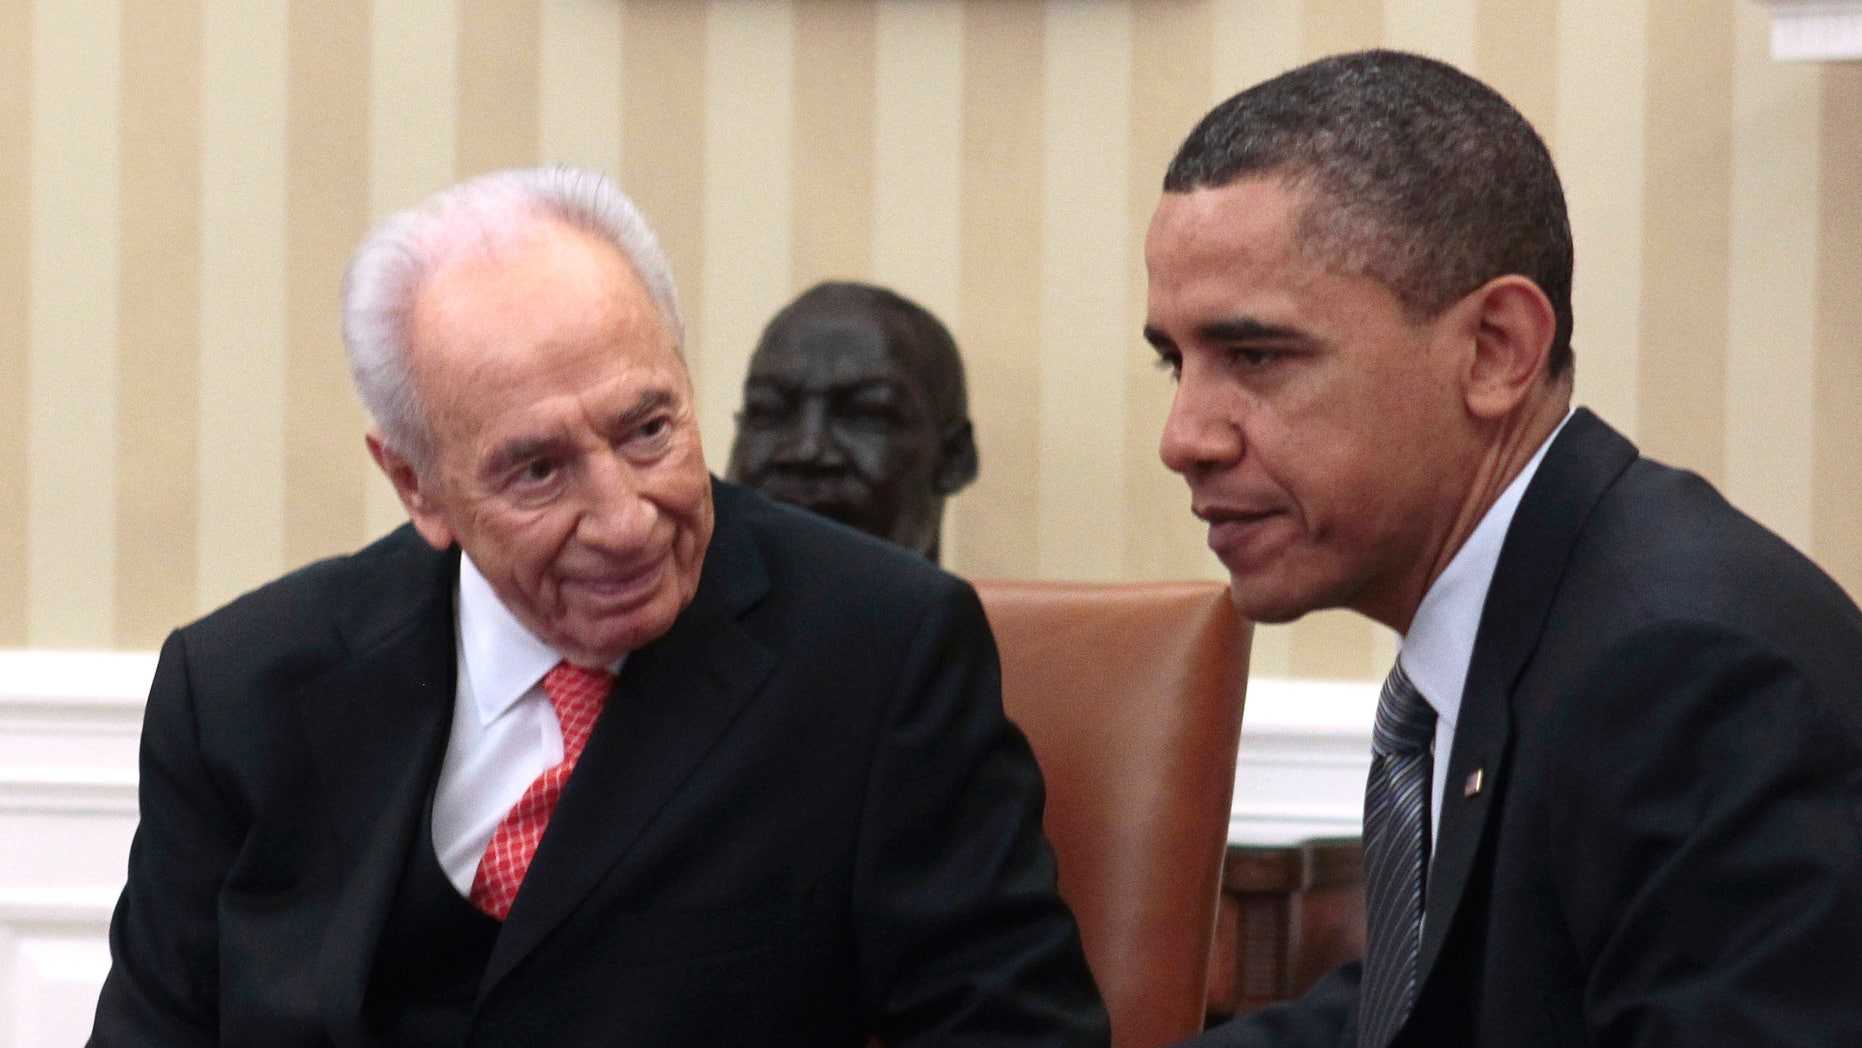 President Barack Obama meets with Israeli President Shimon Peres in the Oval Office of the White House in Washington, Tuesday, April 5, 2011. (AP)